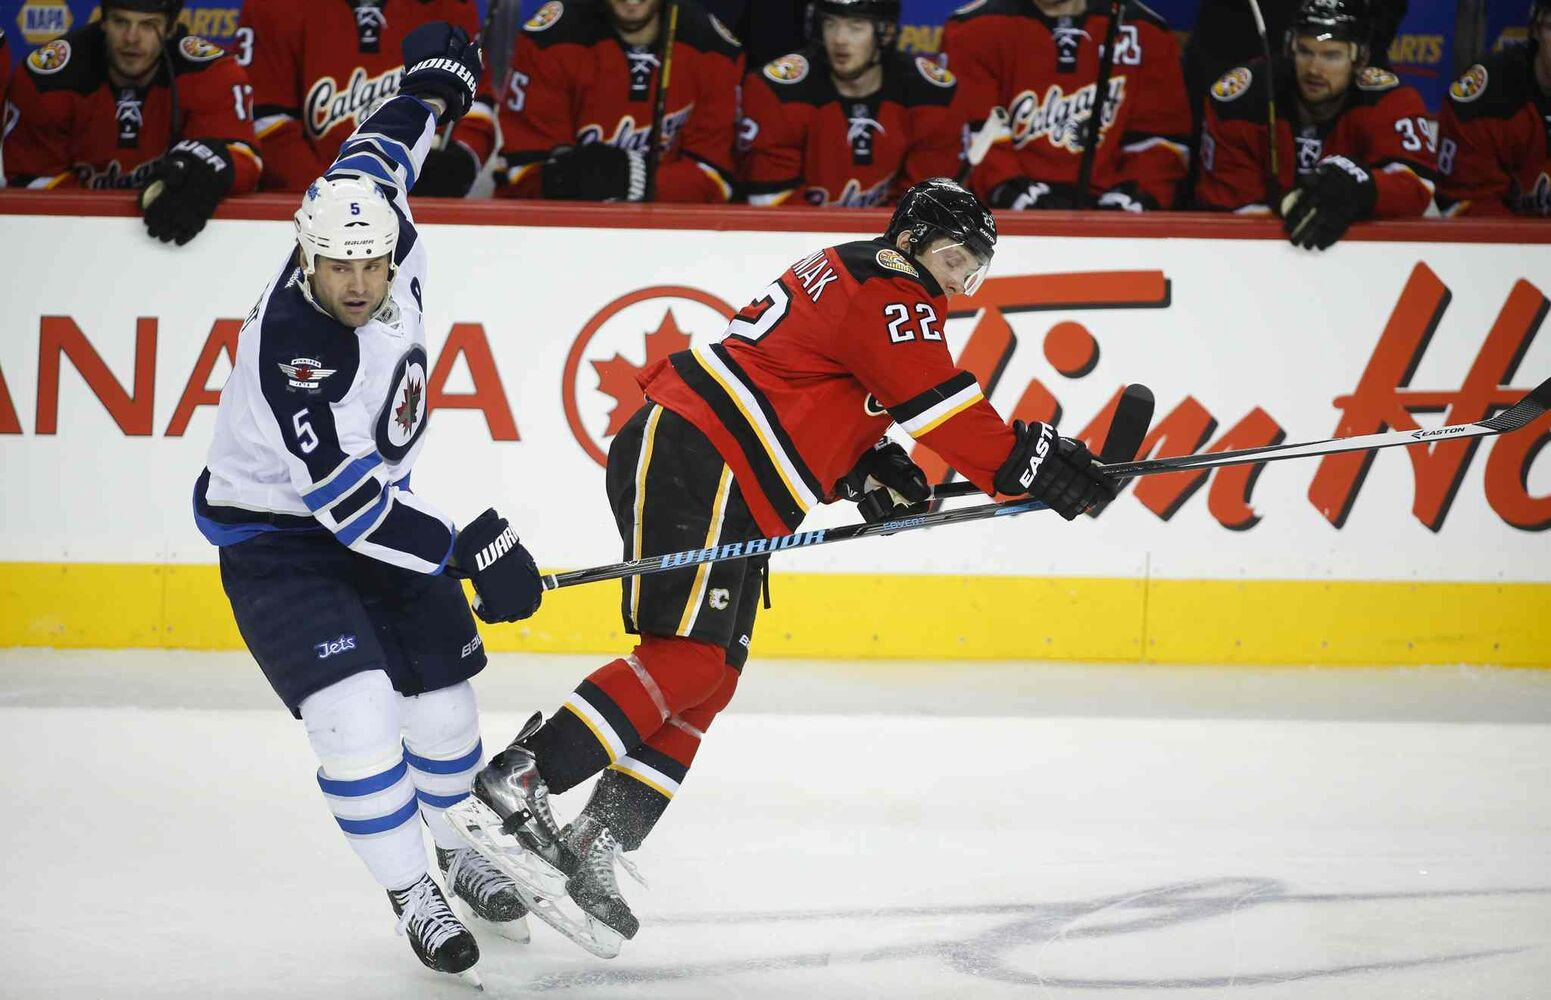 Winnipeg Jets' Mark Stuart, left, knocks Calgary Flames' Lee Stempniak to the ice during the first period. (Jeff McIntosh / The Canadian Press)